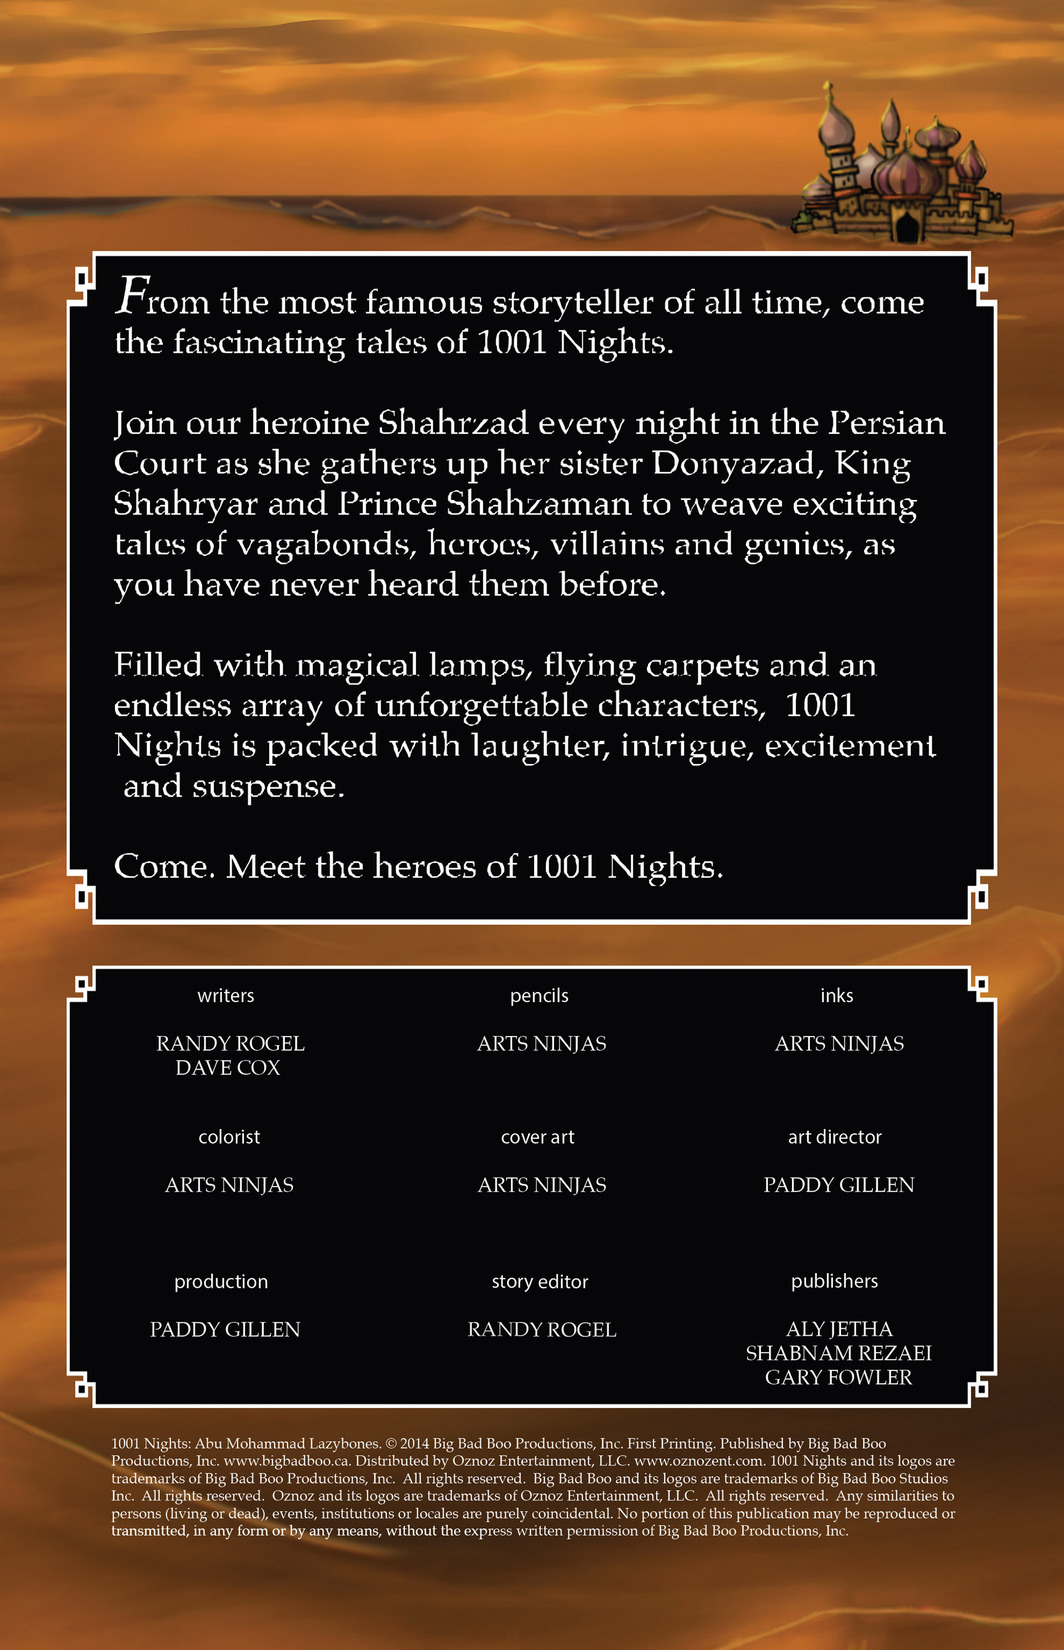 Read online 1001 Nights comic -  Issue #8 - 2